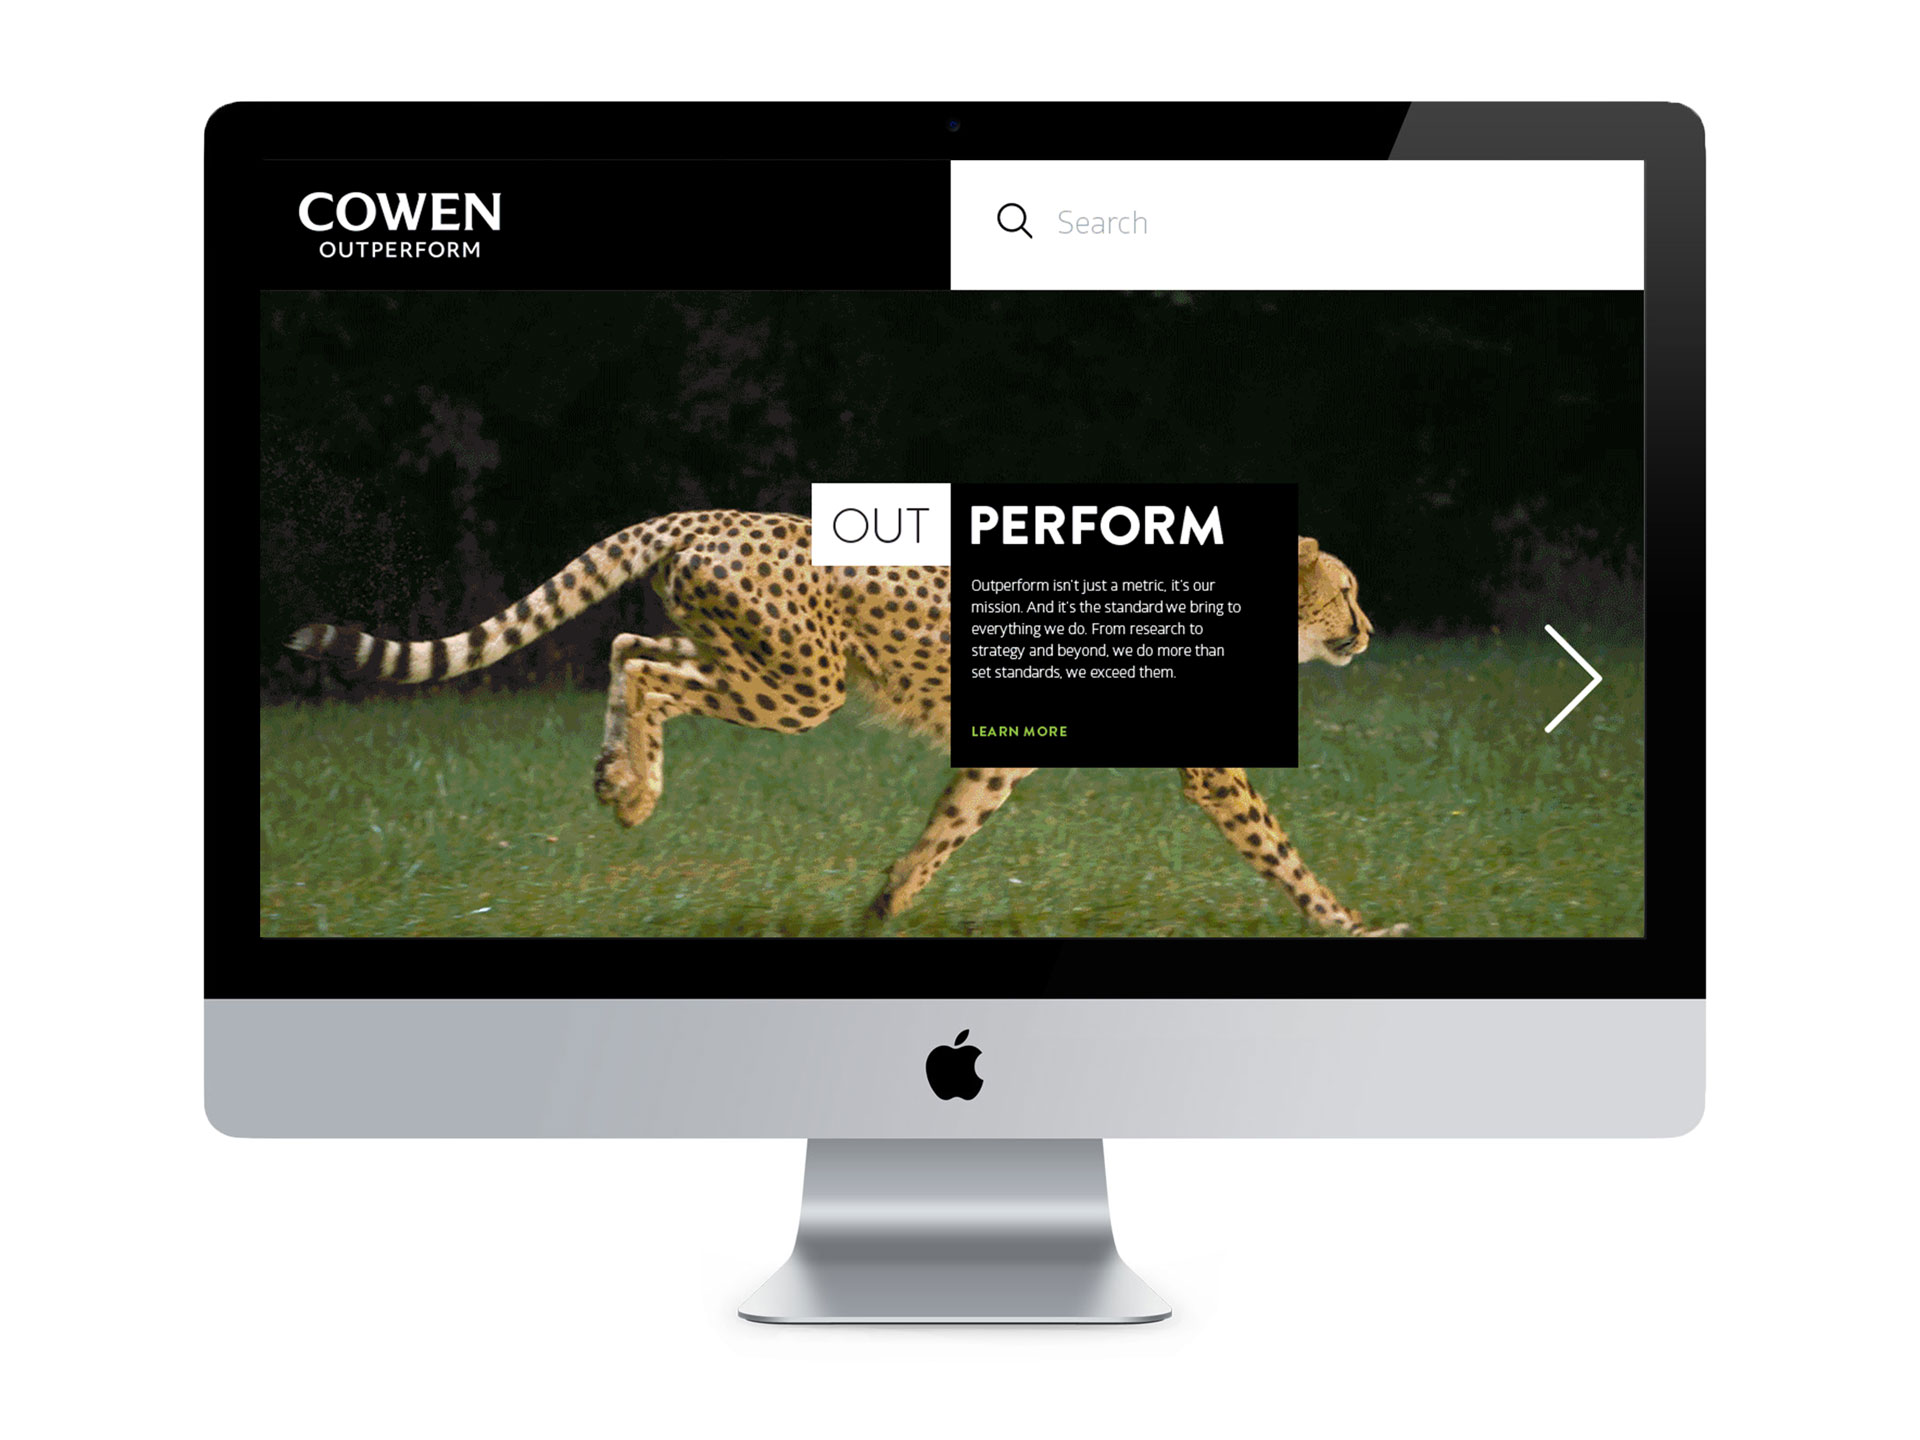 Rebranded Cowen homepage showing Outperform message